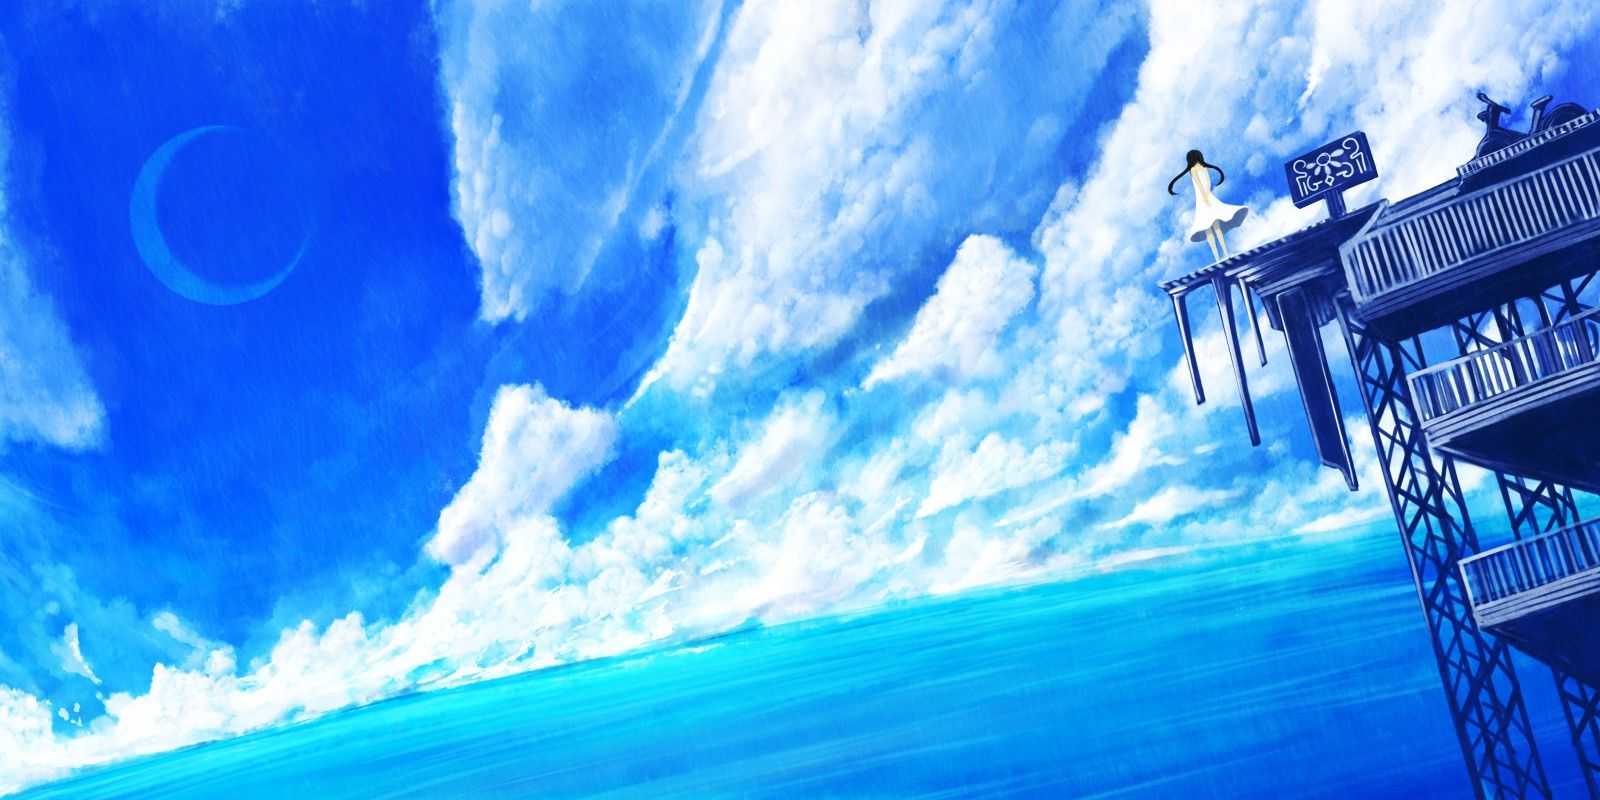 Blue Anime Wallpapers Top Free Blue Anime Backgrounds